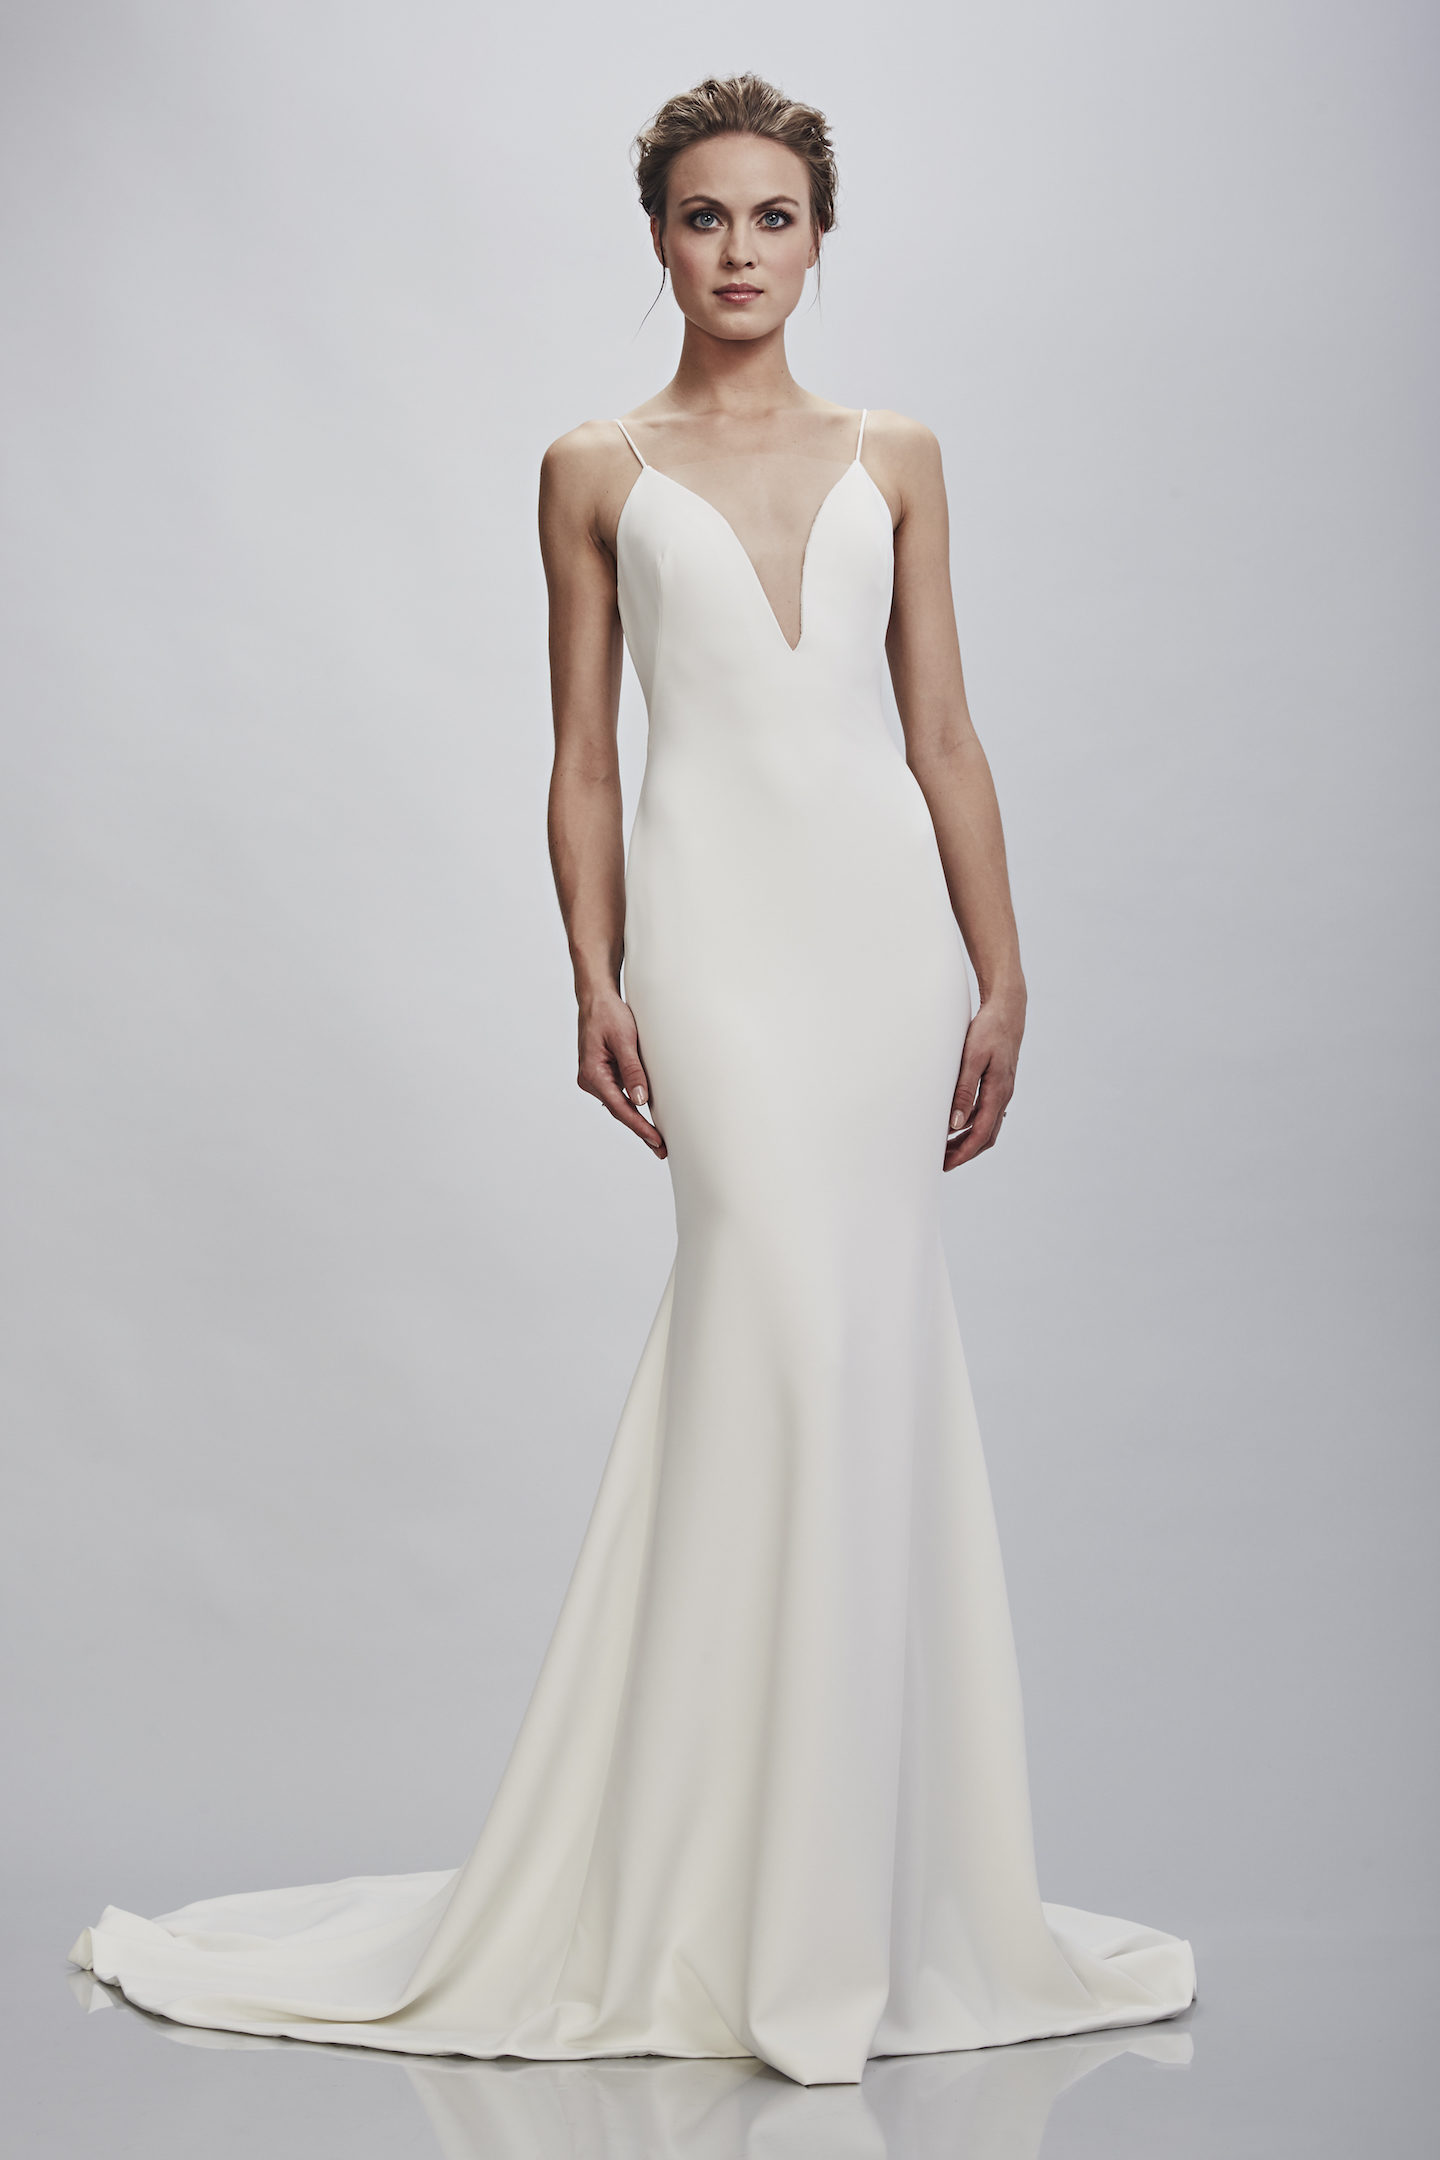 Bruna - Theia Couture available at Maggie Louise Bridal